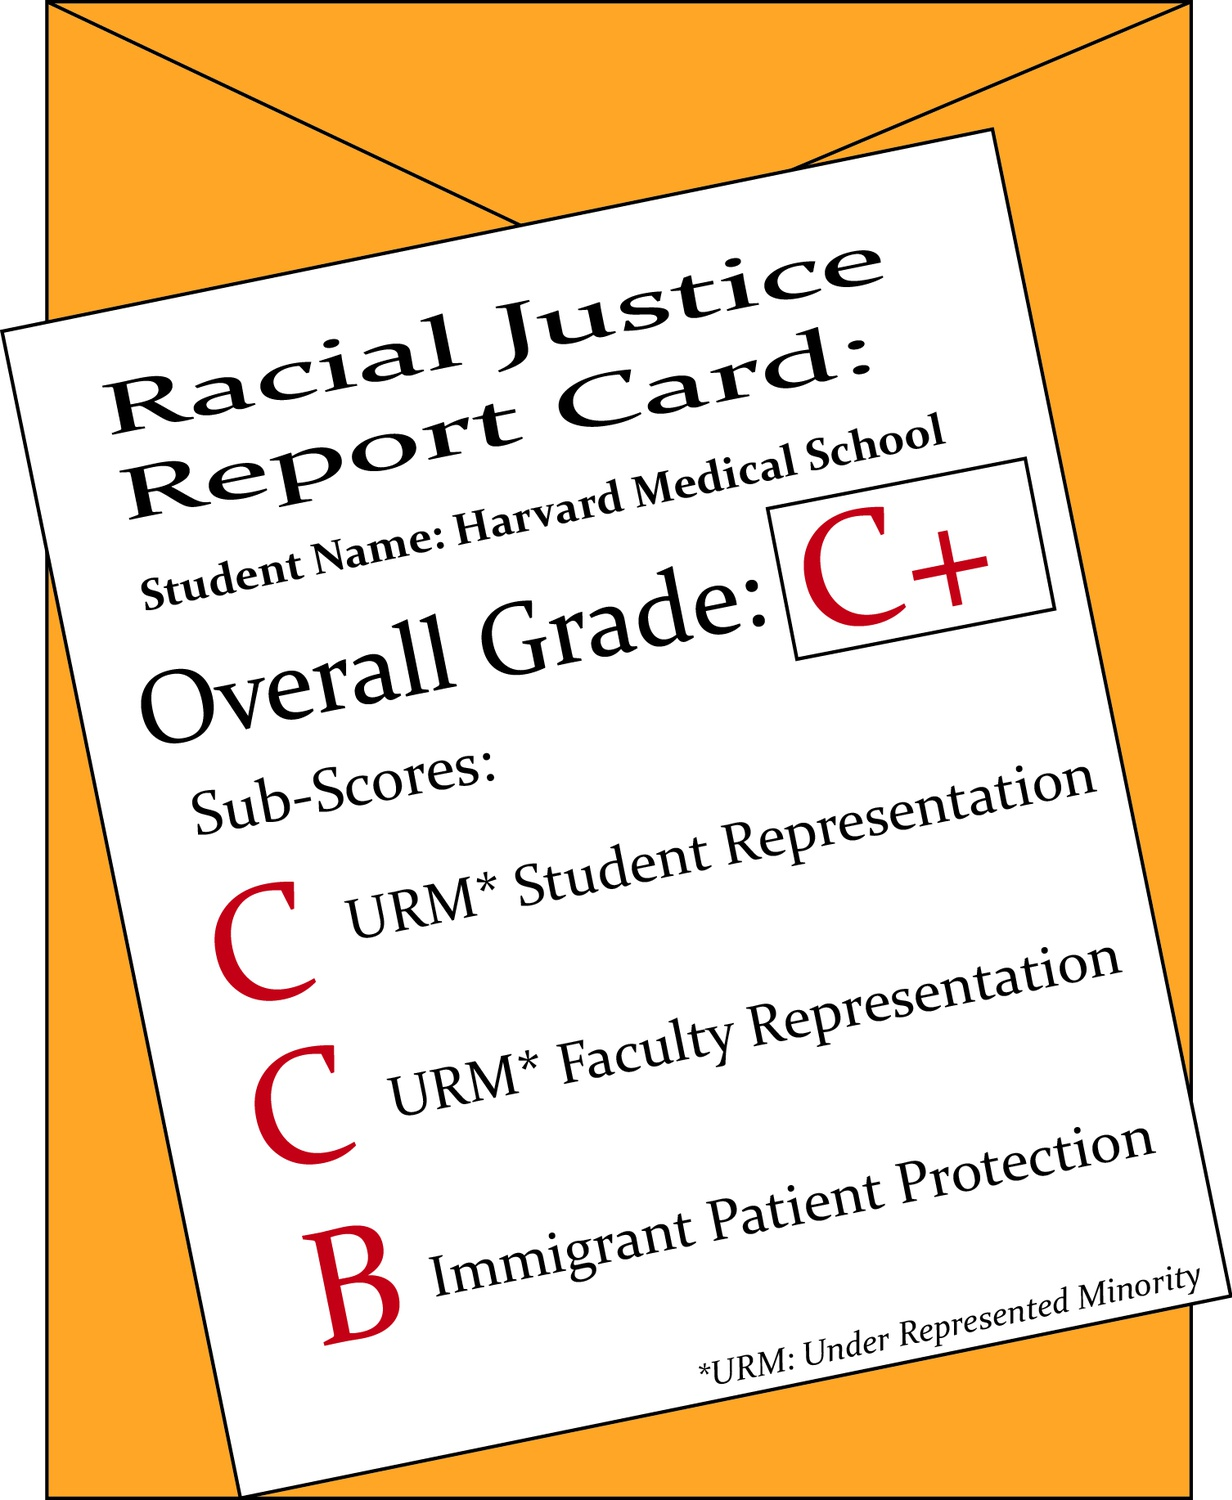 White Coats for Black Lives Report Card